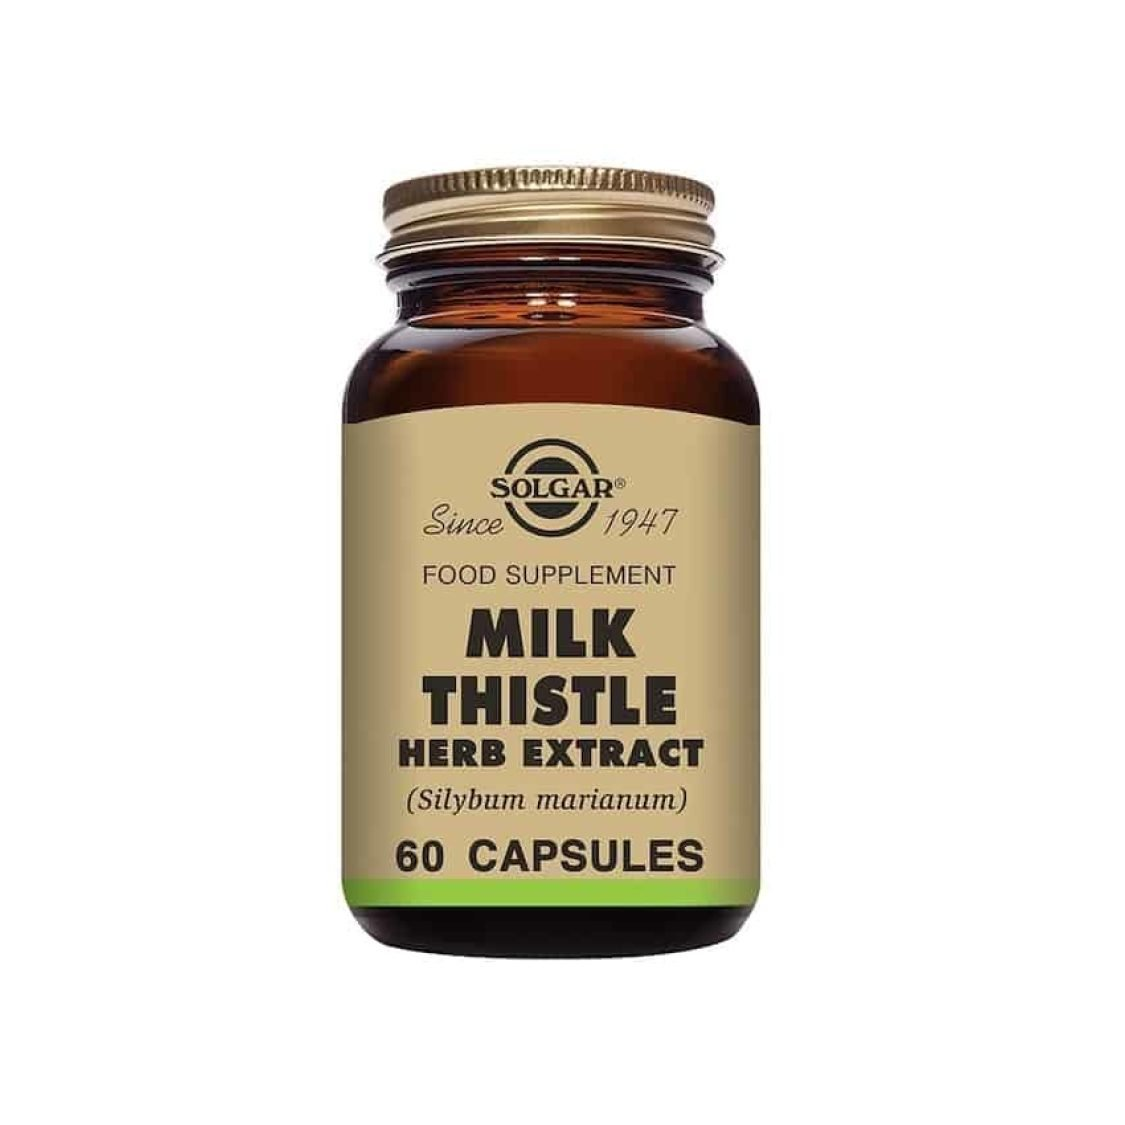 Solgar - Herbal Products - Milk Thistle Herb Extract Vegicaps - Size: 60